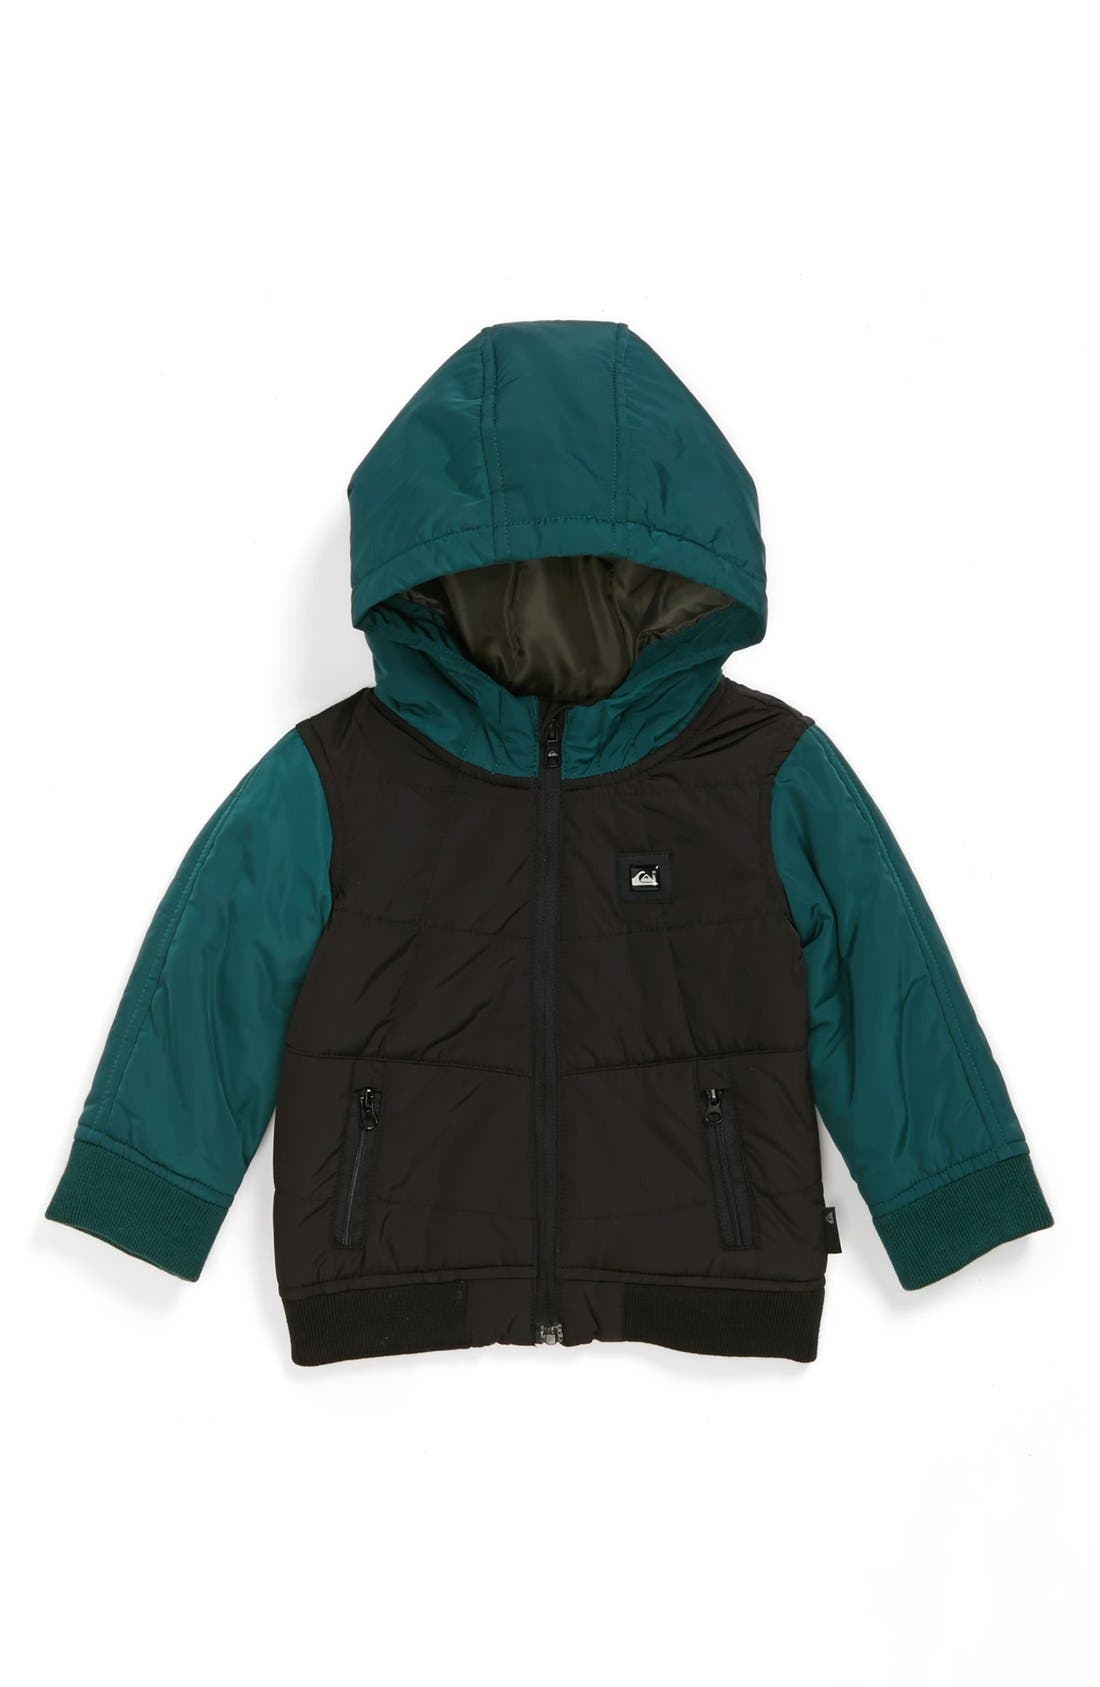 Alternate Image 1 Selected - Quiksilver 'Marquette' Water Resistant Quilted Jacket (Toddler Boys)